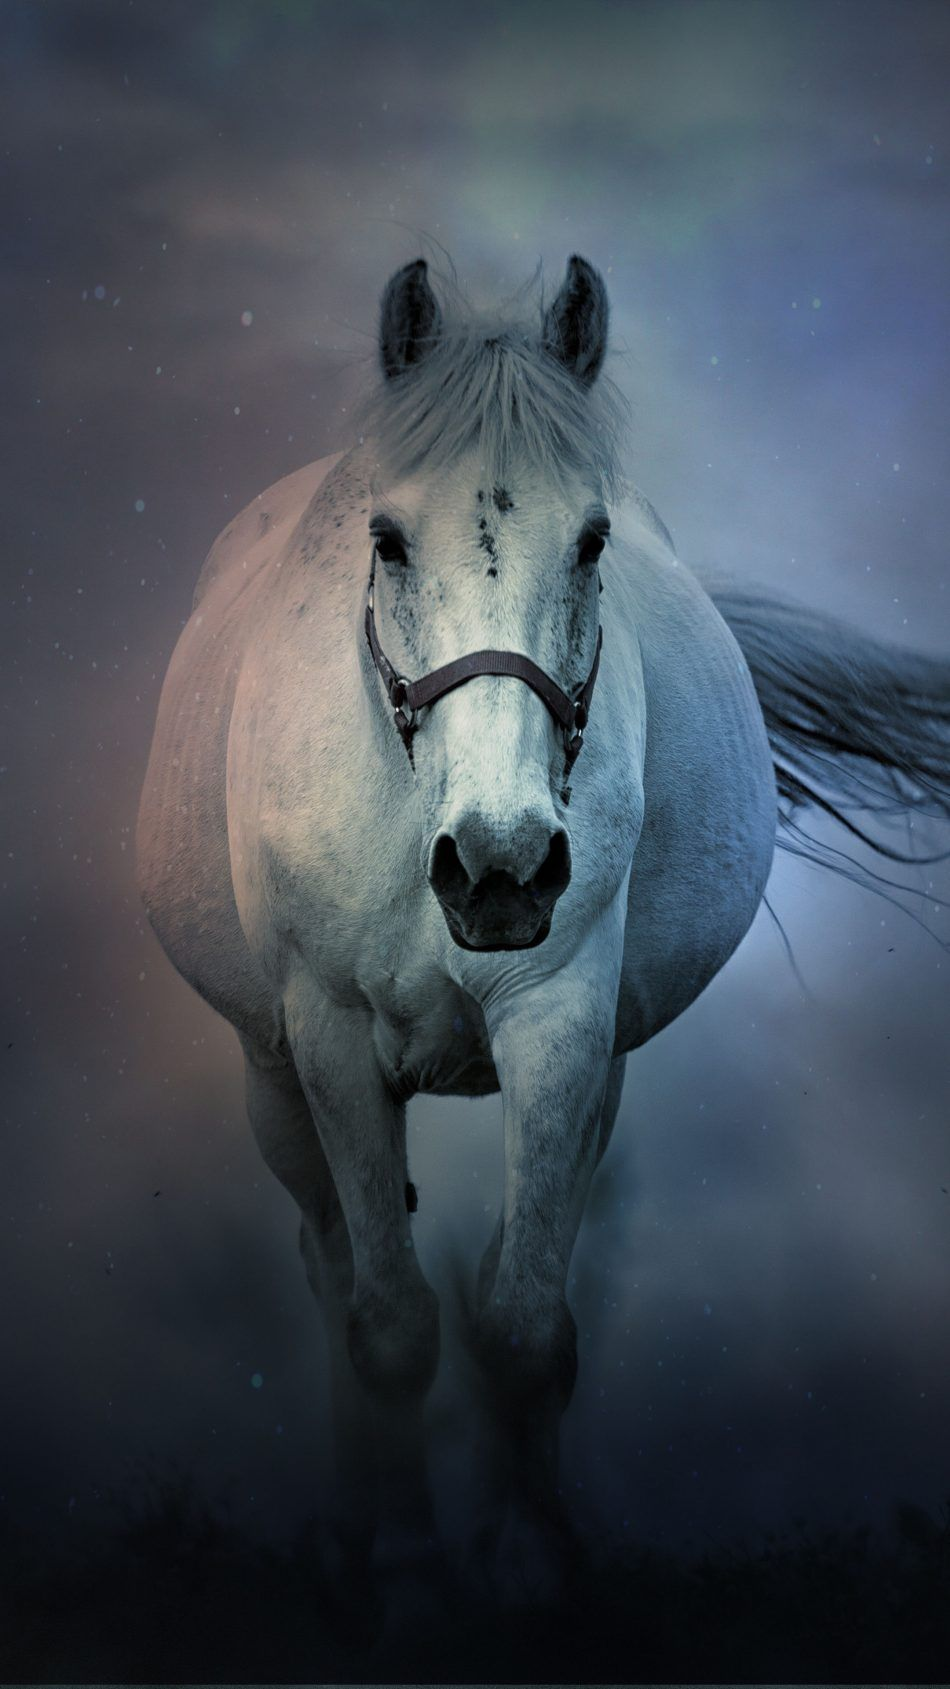 White Horse Running 4k Ultra Hd Mobile Wallpaper Horse Wallpaper Horses Animals